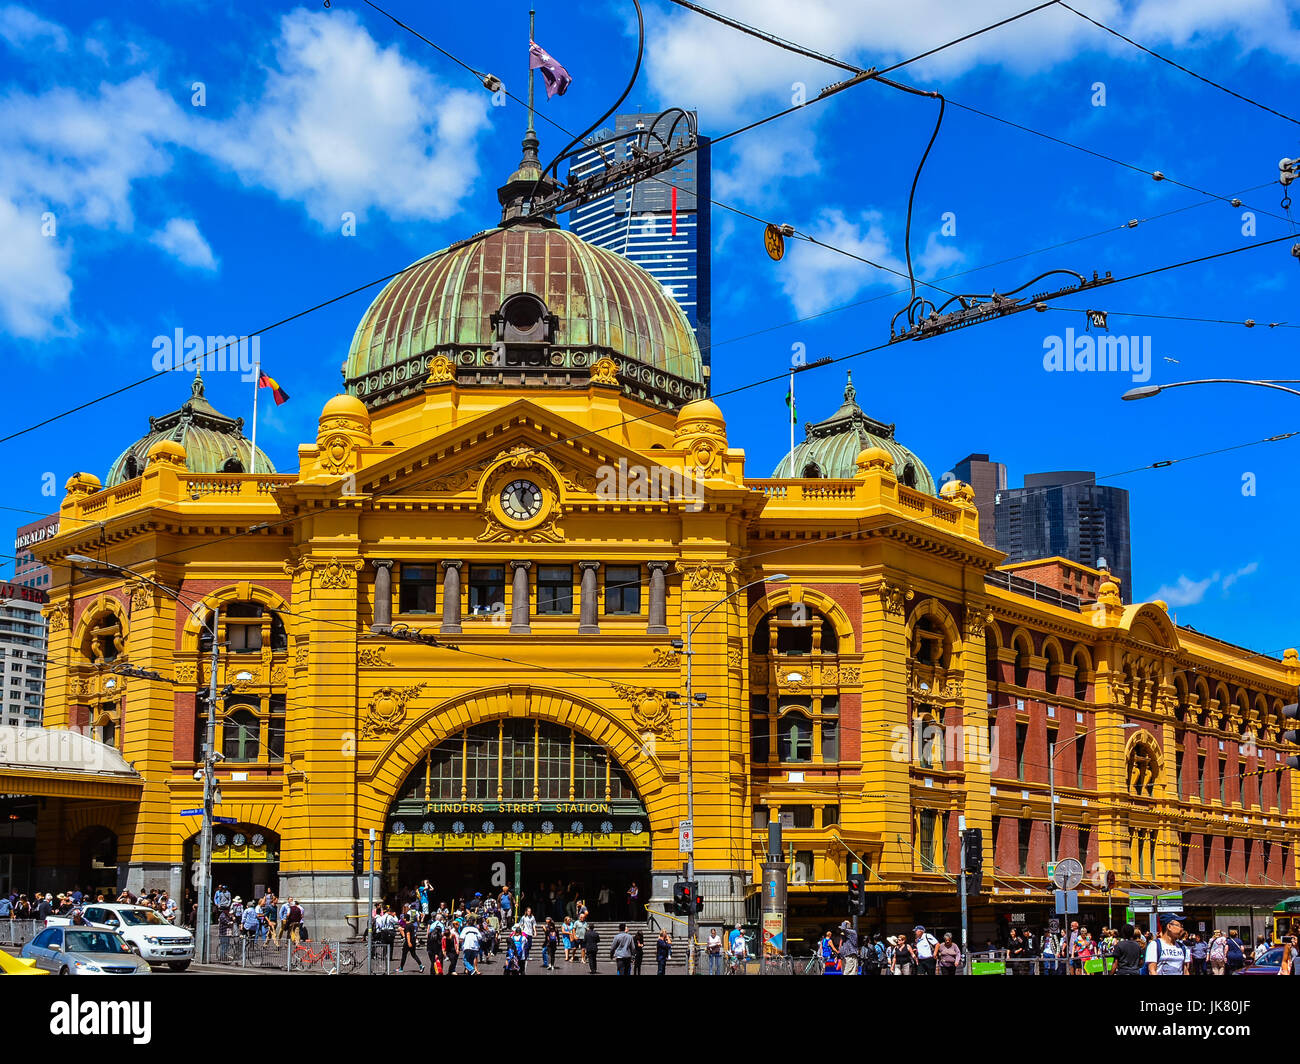 Flinders Street railway station - Railway station in the corner of Flinders and Swanston Streets serves the city's - Stock Image